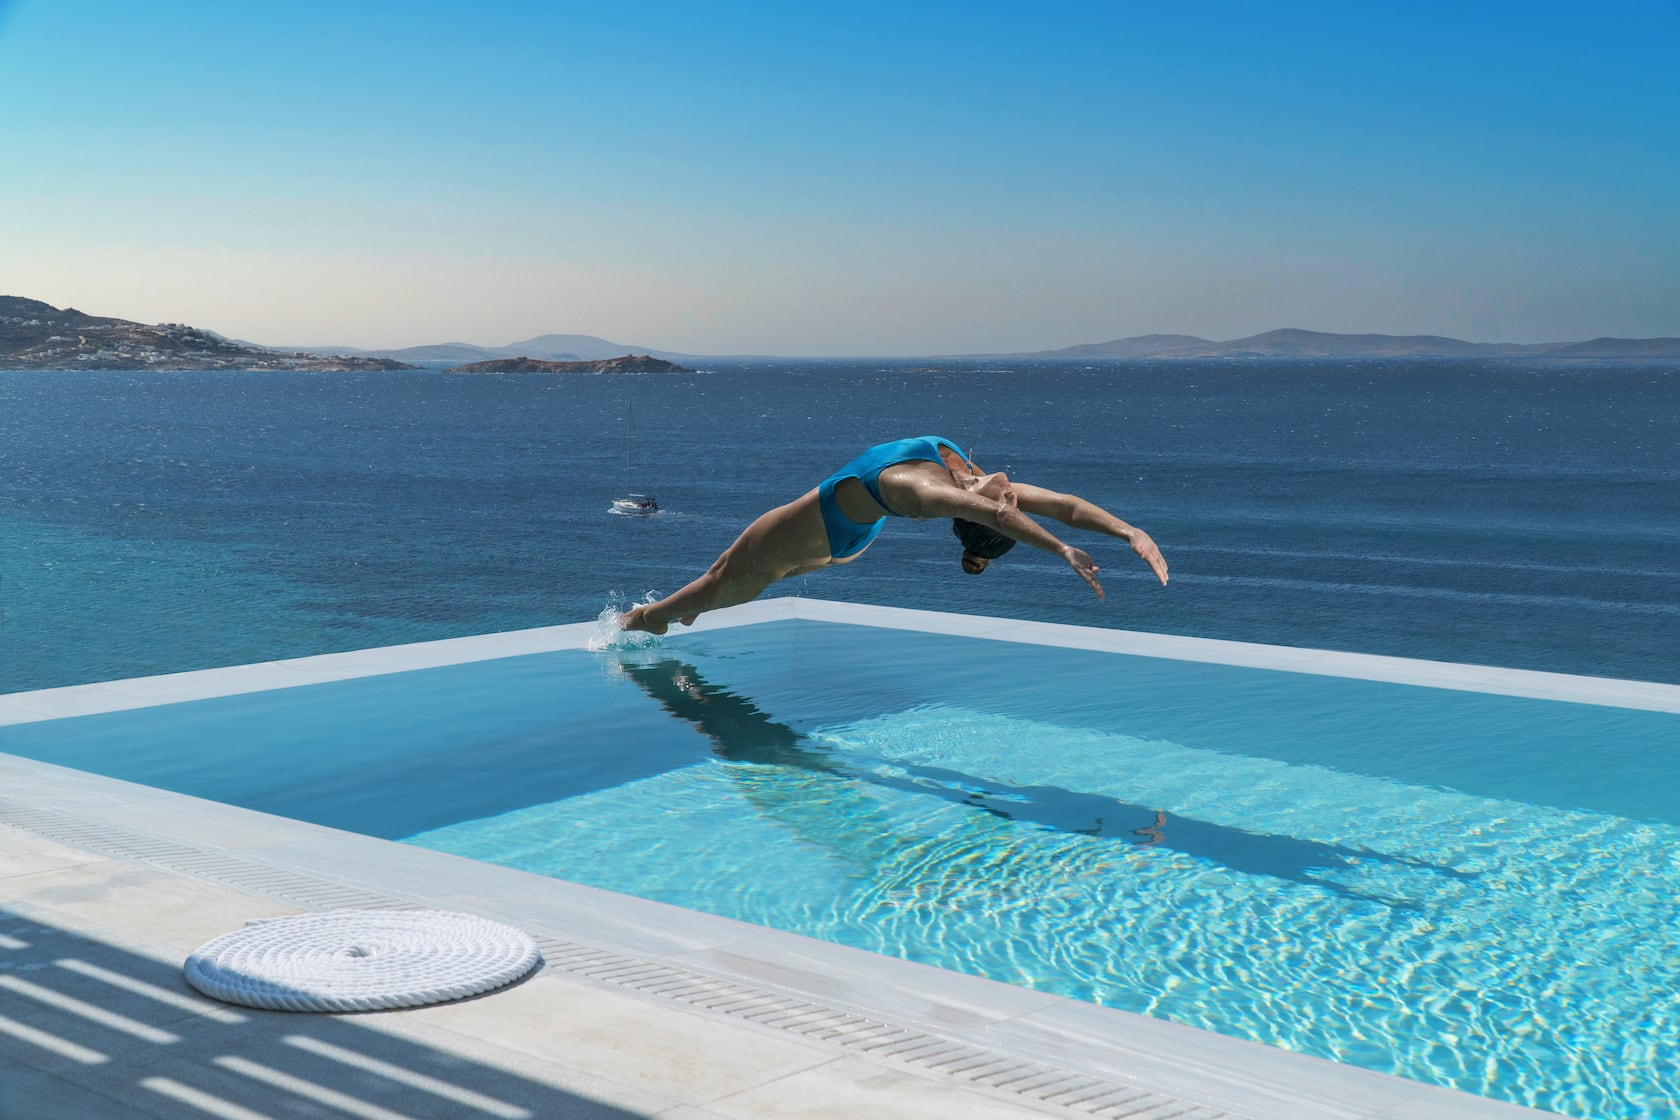 Lady diving with an impressive way into the infinity pool with sea views at Mykonos Riviera.